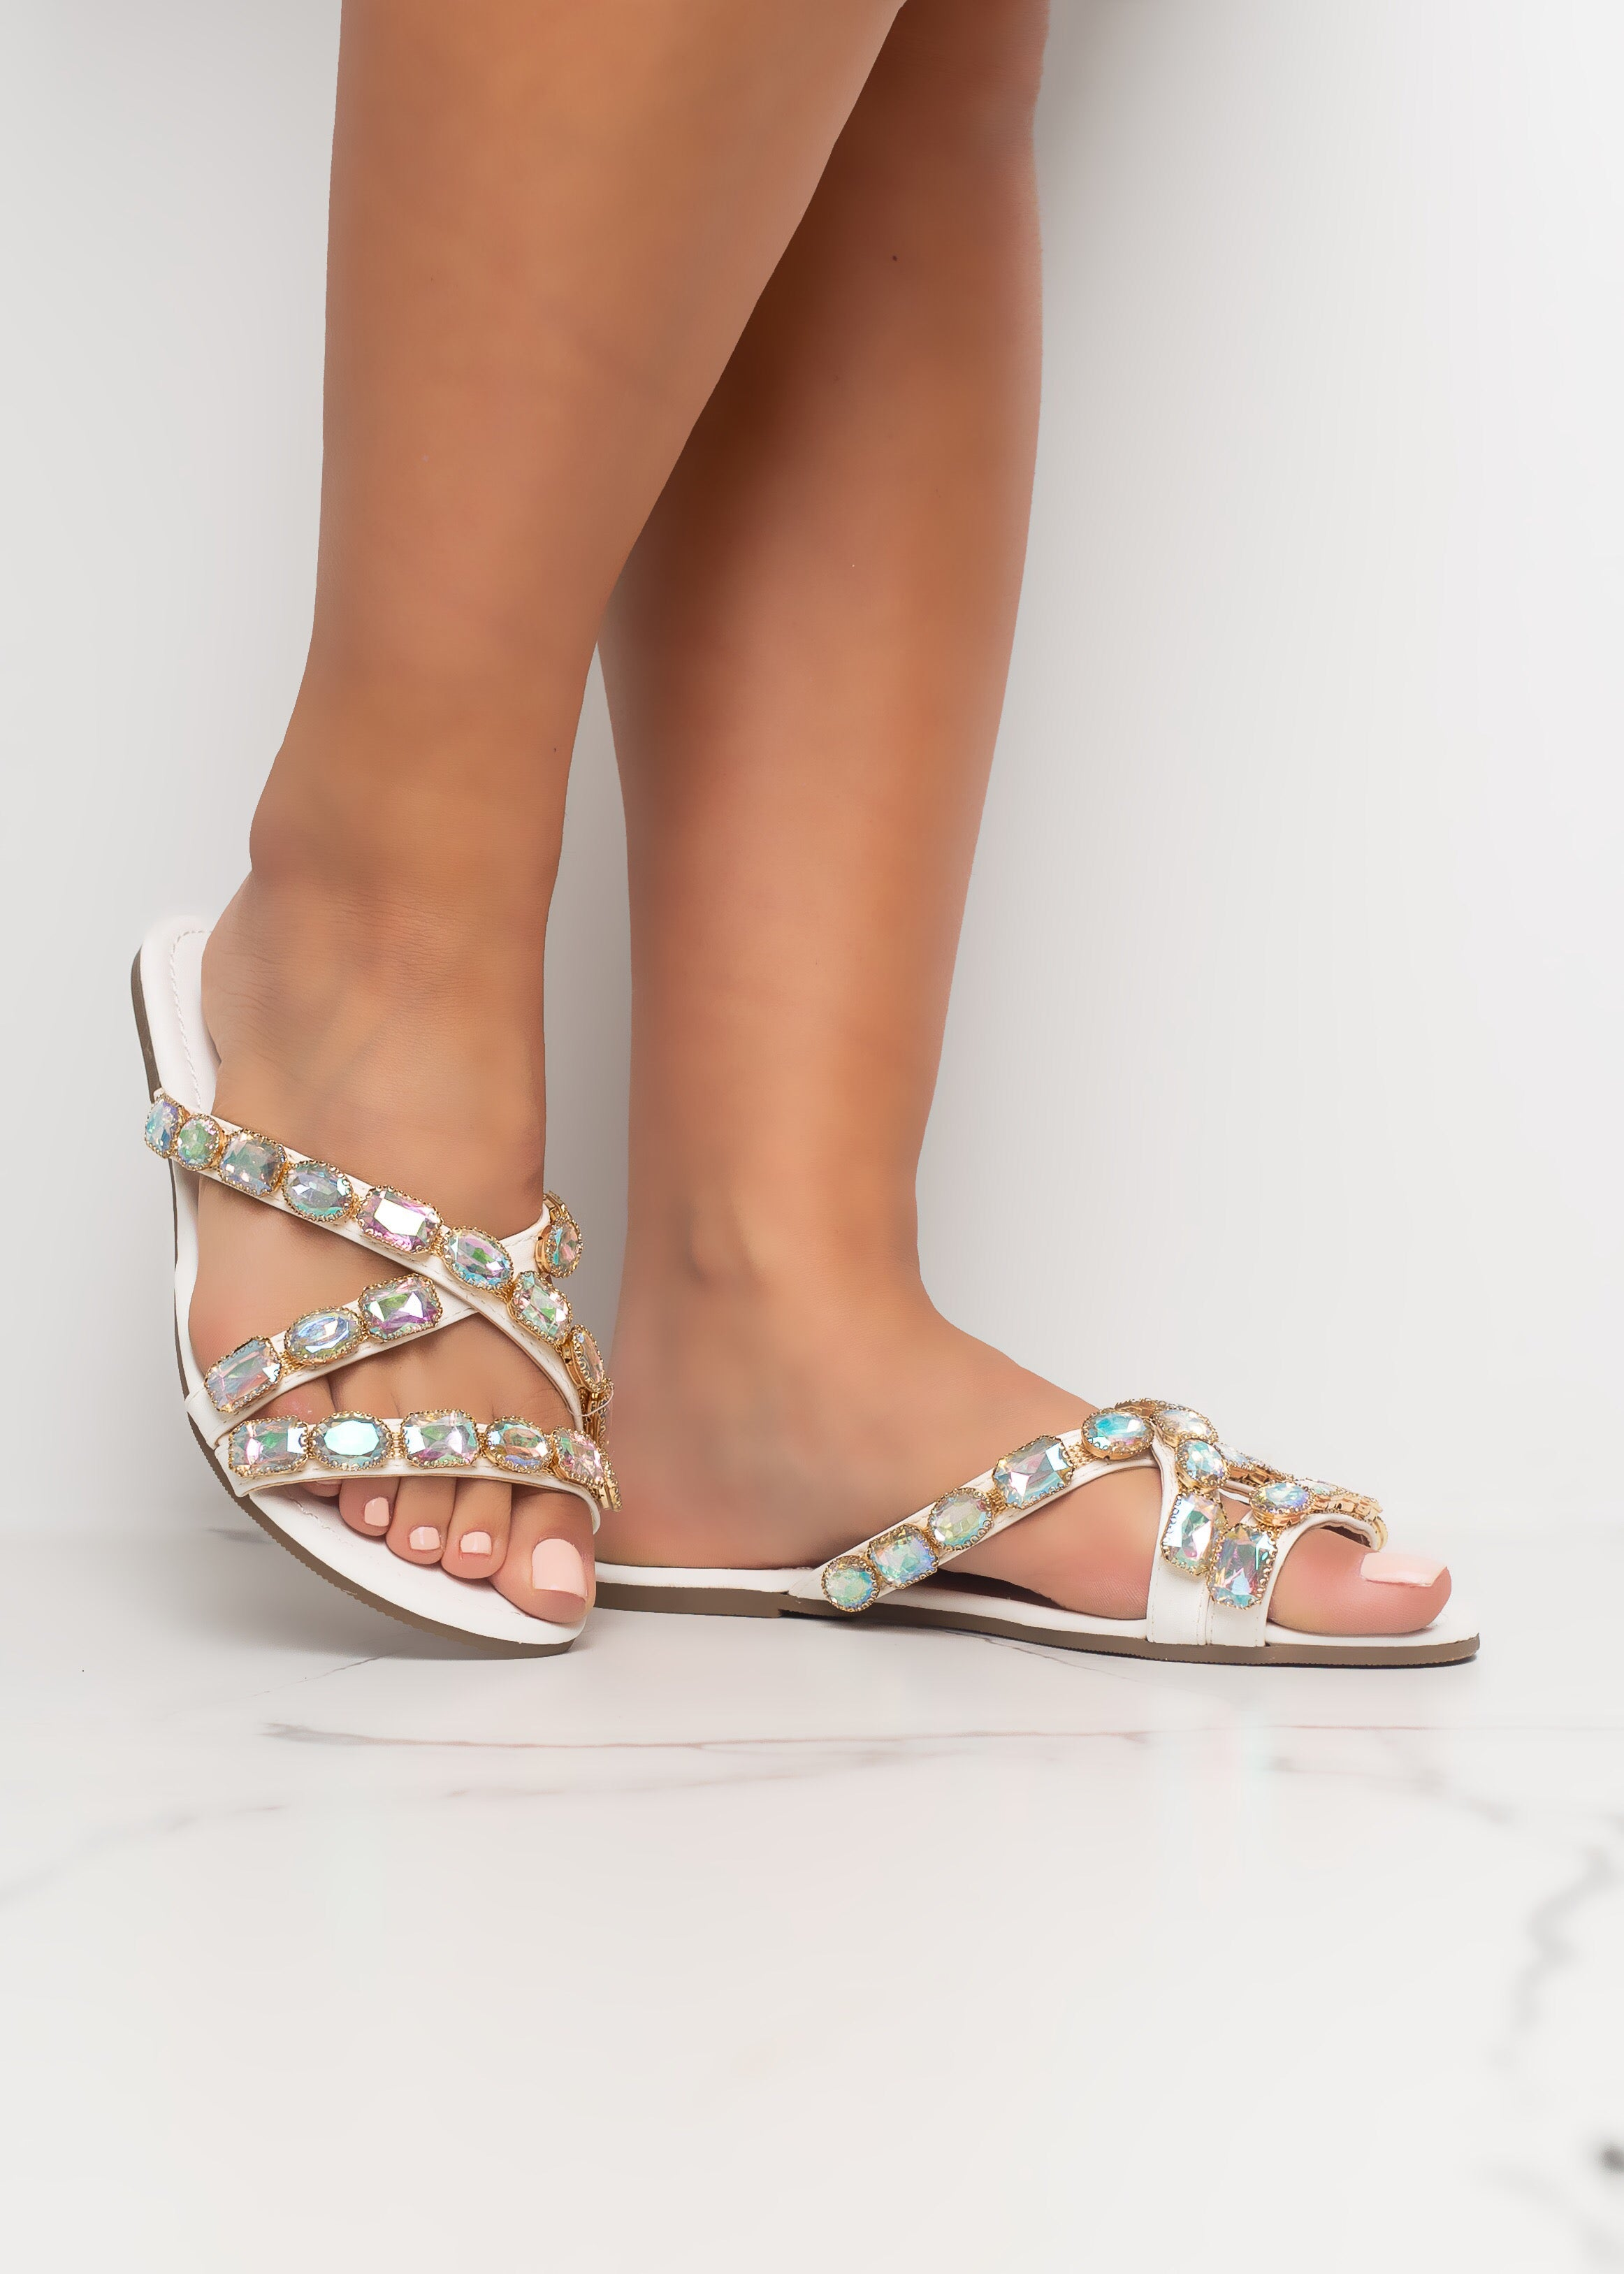 You're A Gem White Sandals